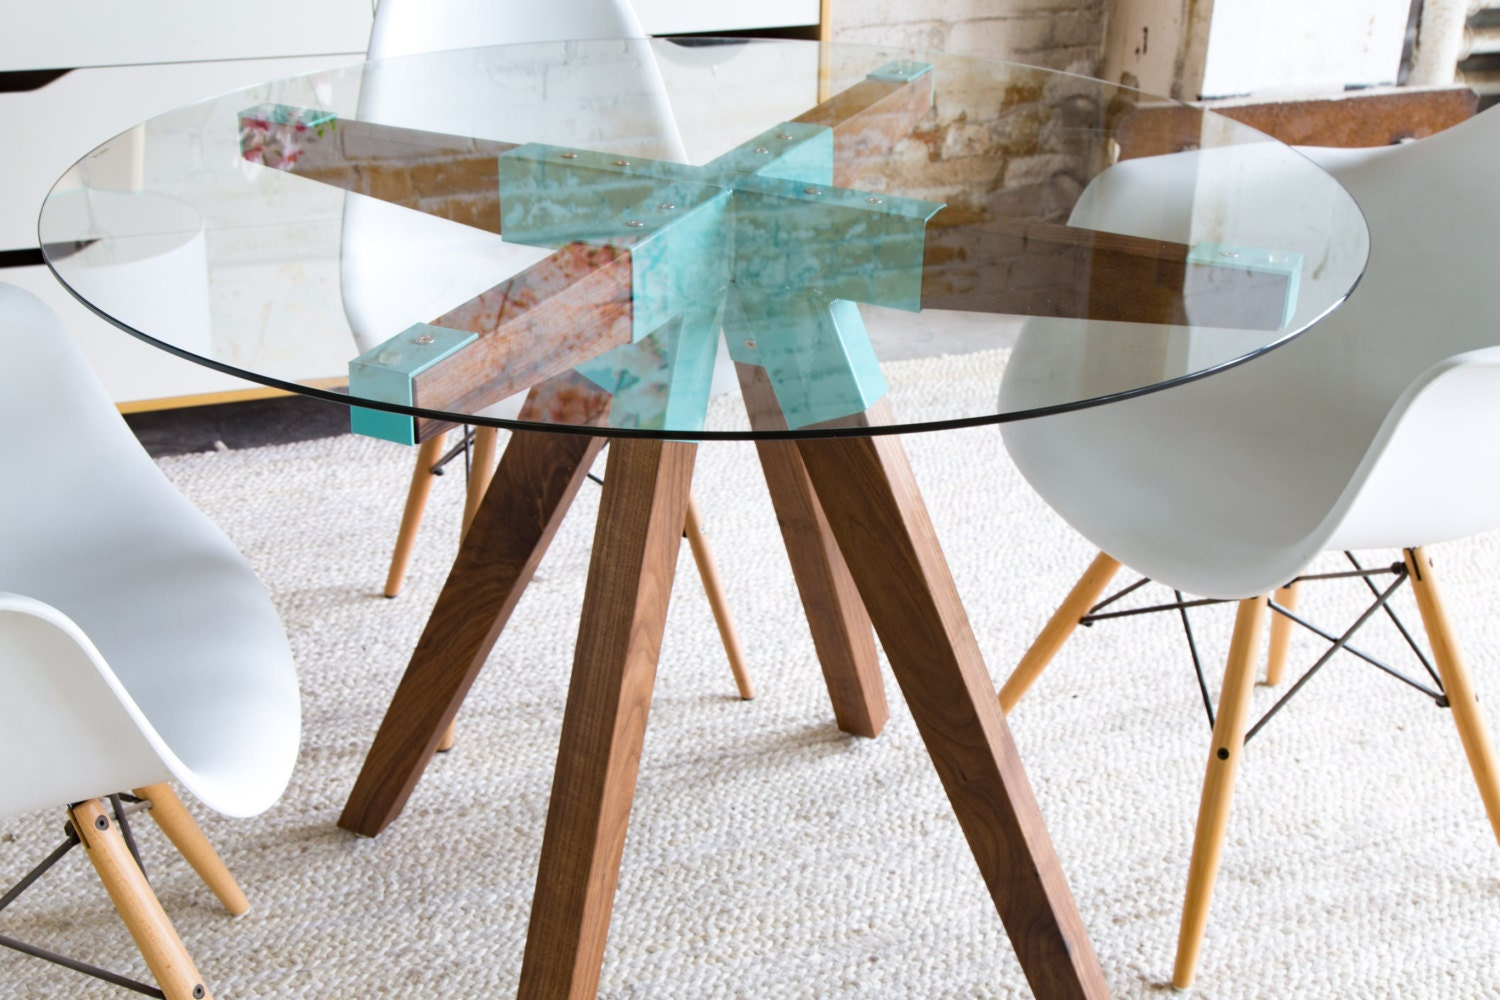 round dining table round kitchen table Round Dining Table Glass Dining Table Dining Table Round Glass Dining Table Cafe Table Small Glass Table Kitchen Table The Maui